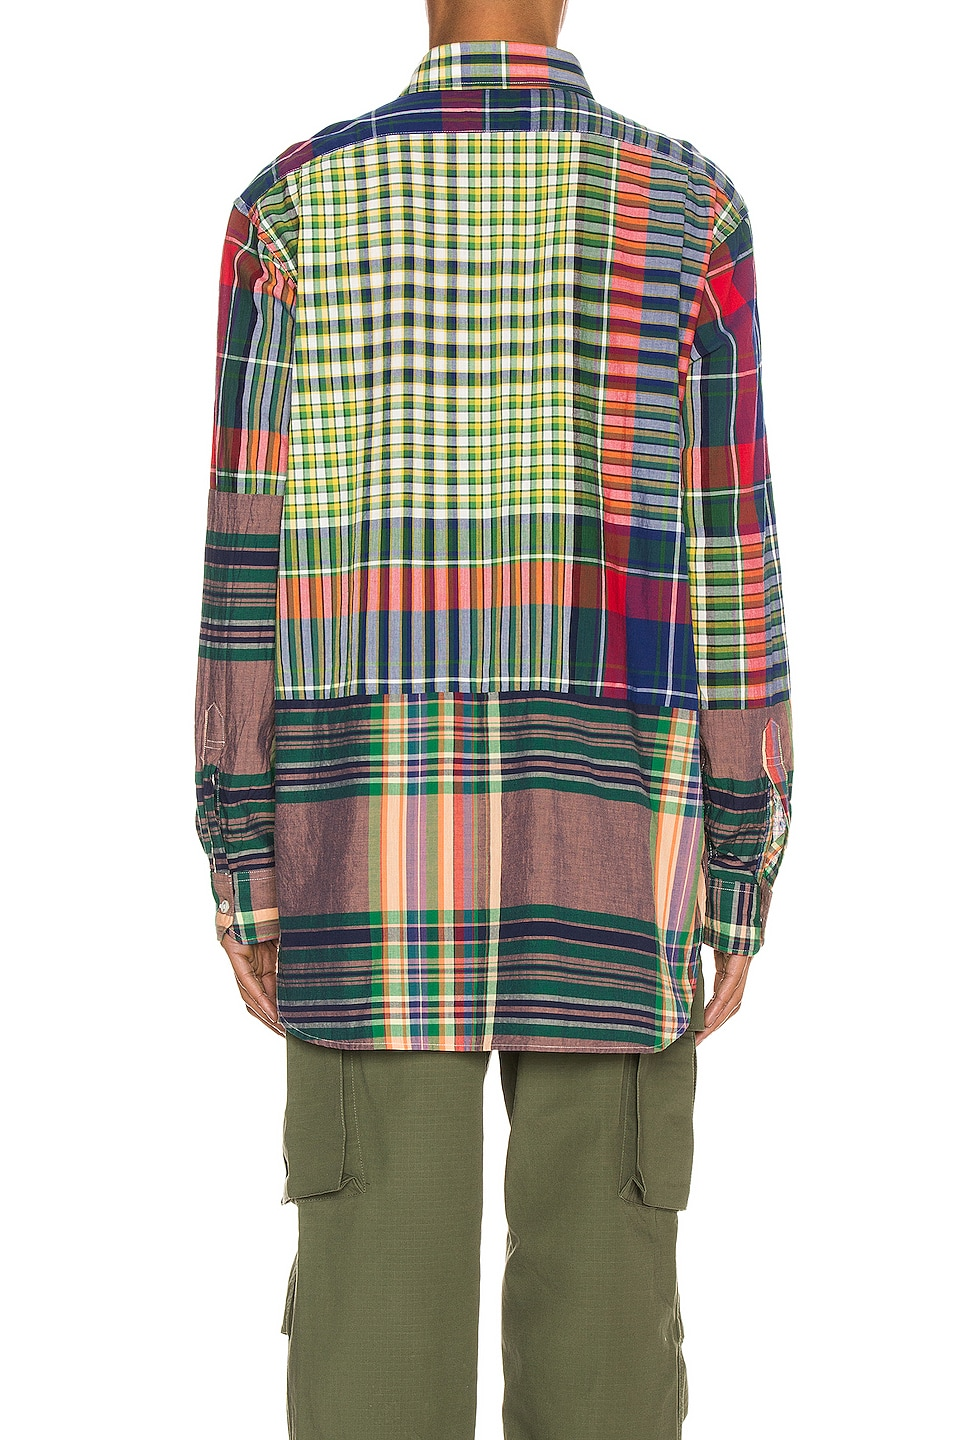 Image 4 of Engineered Garments Spread Collar Shirt in Red & Blue & Green Big Madras Plaid